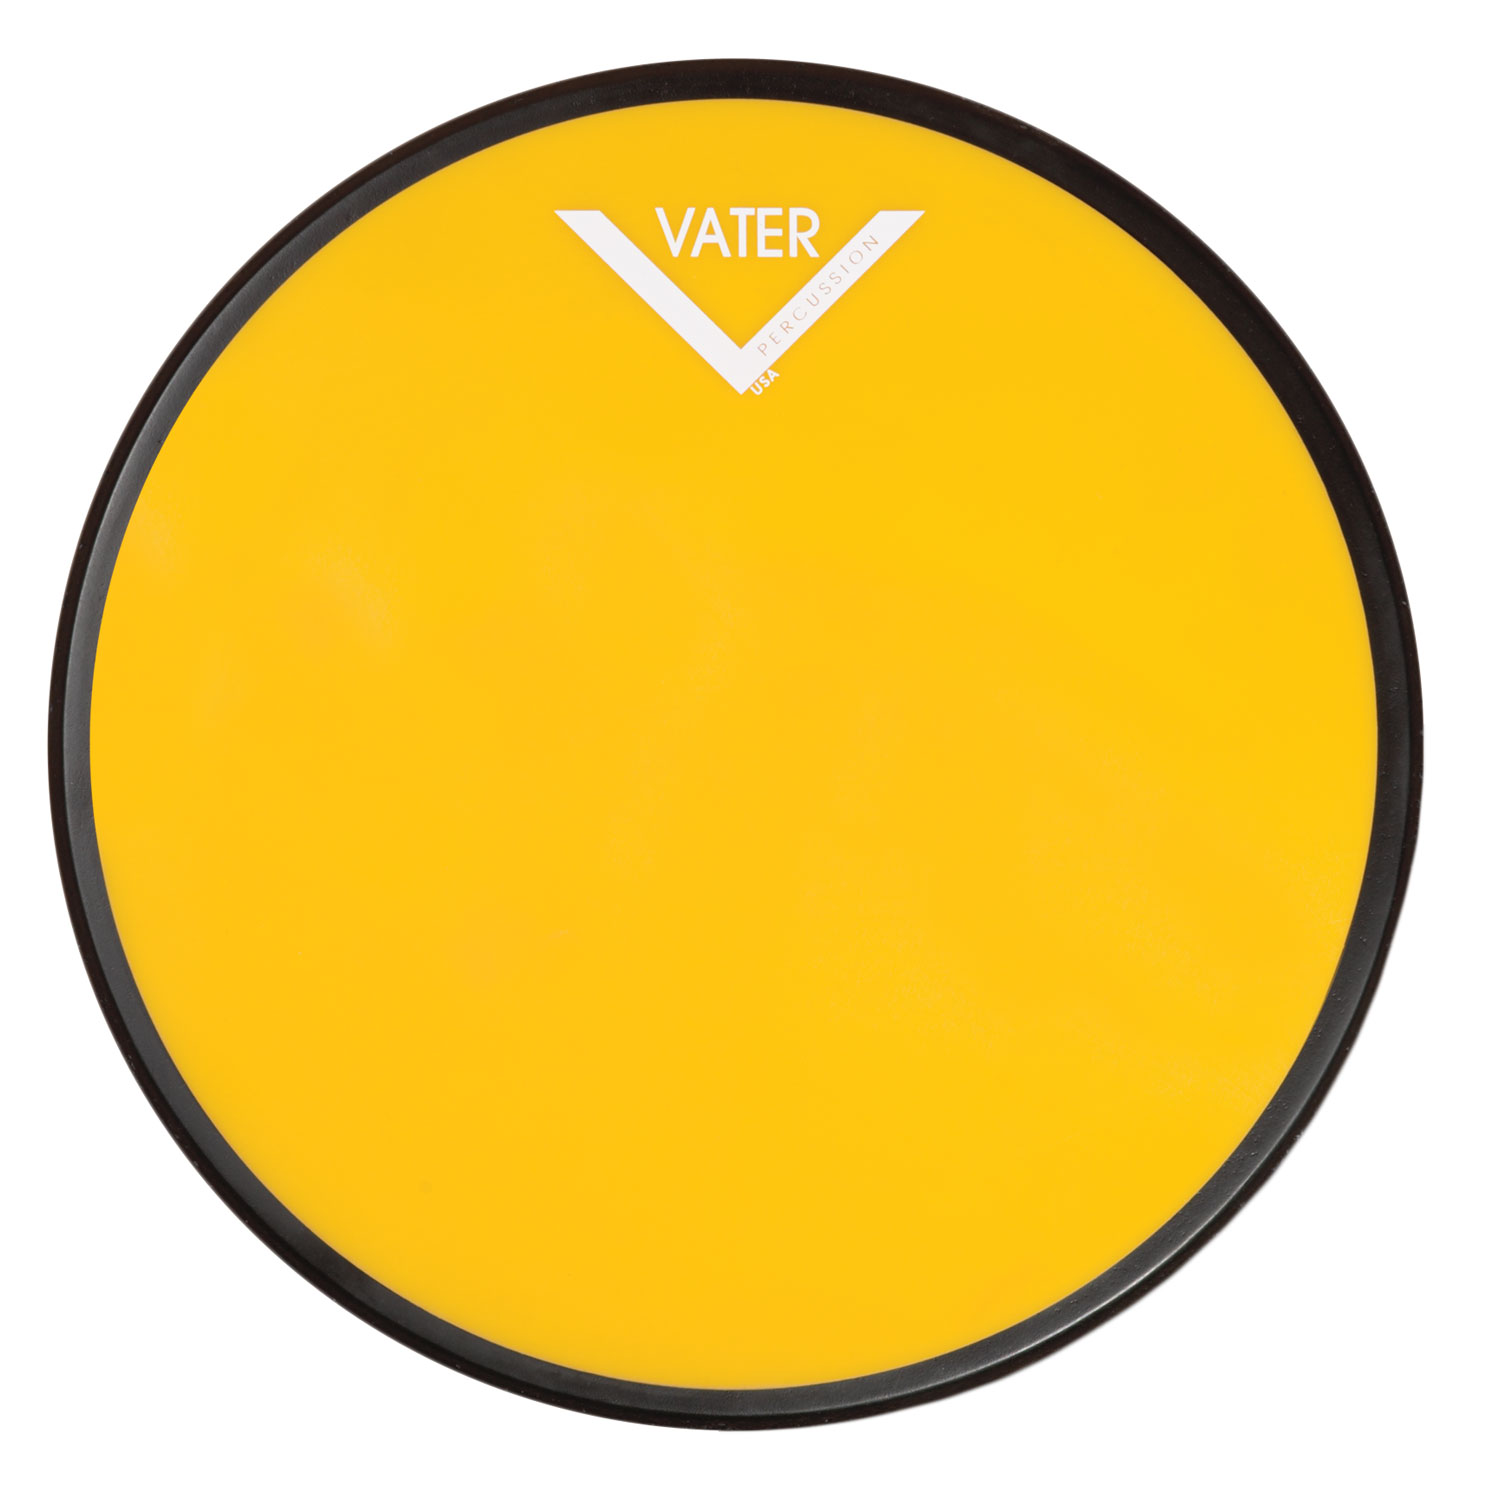 "Vater 12"" Single-Sided Chop Builder Practice Pad"